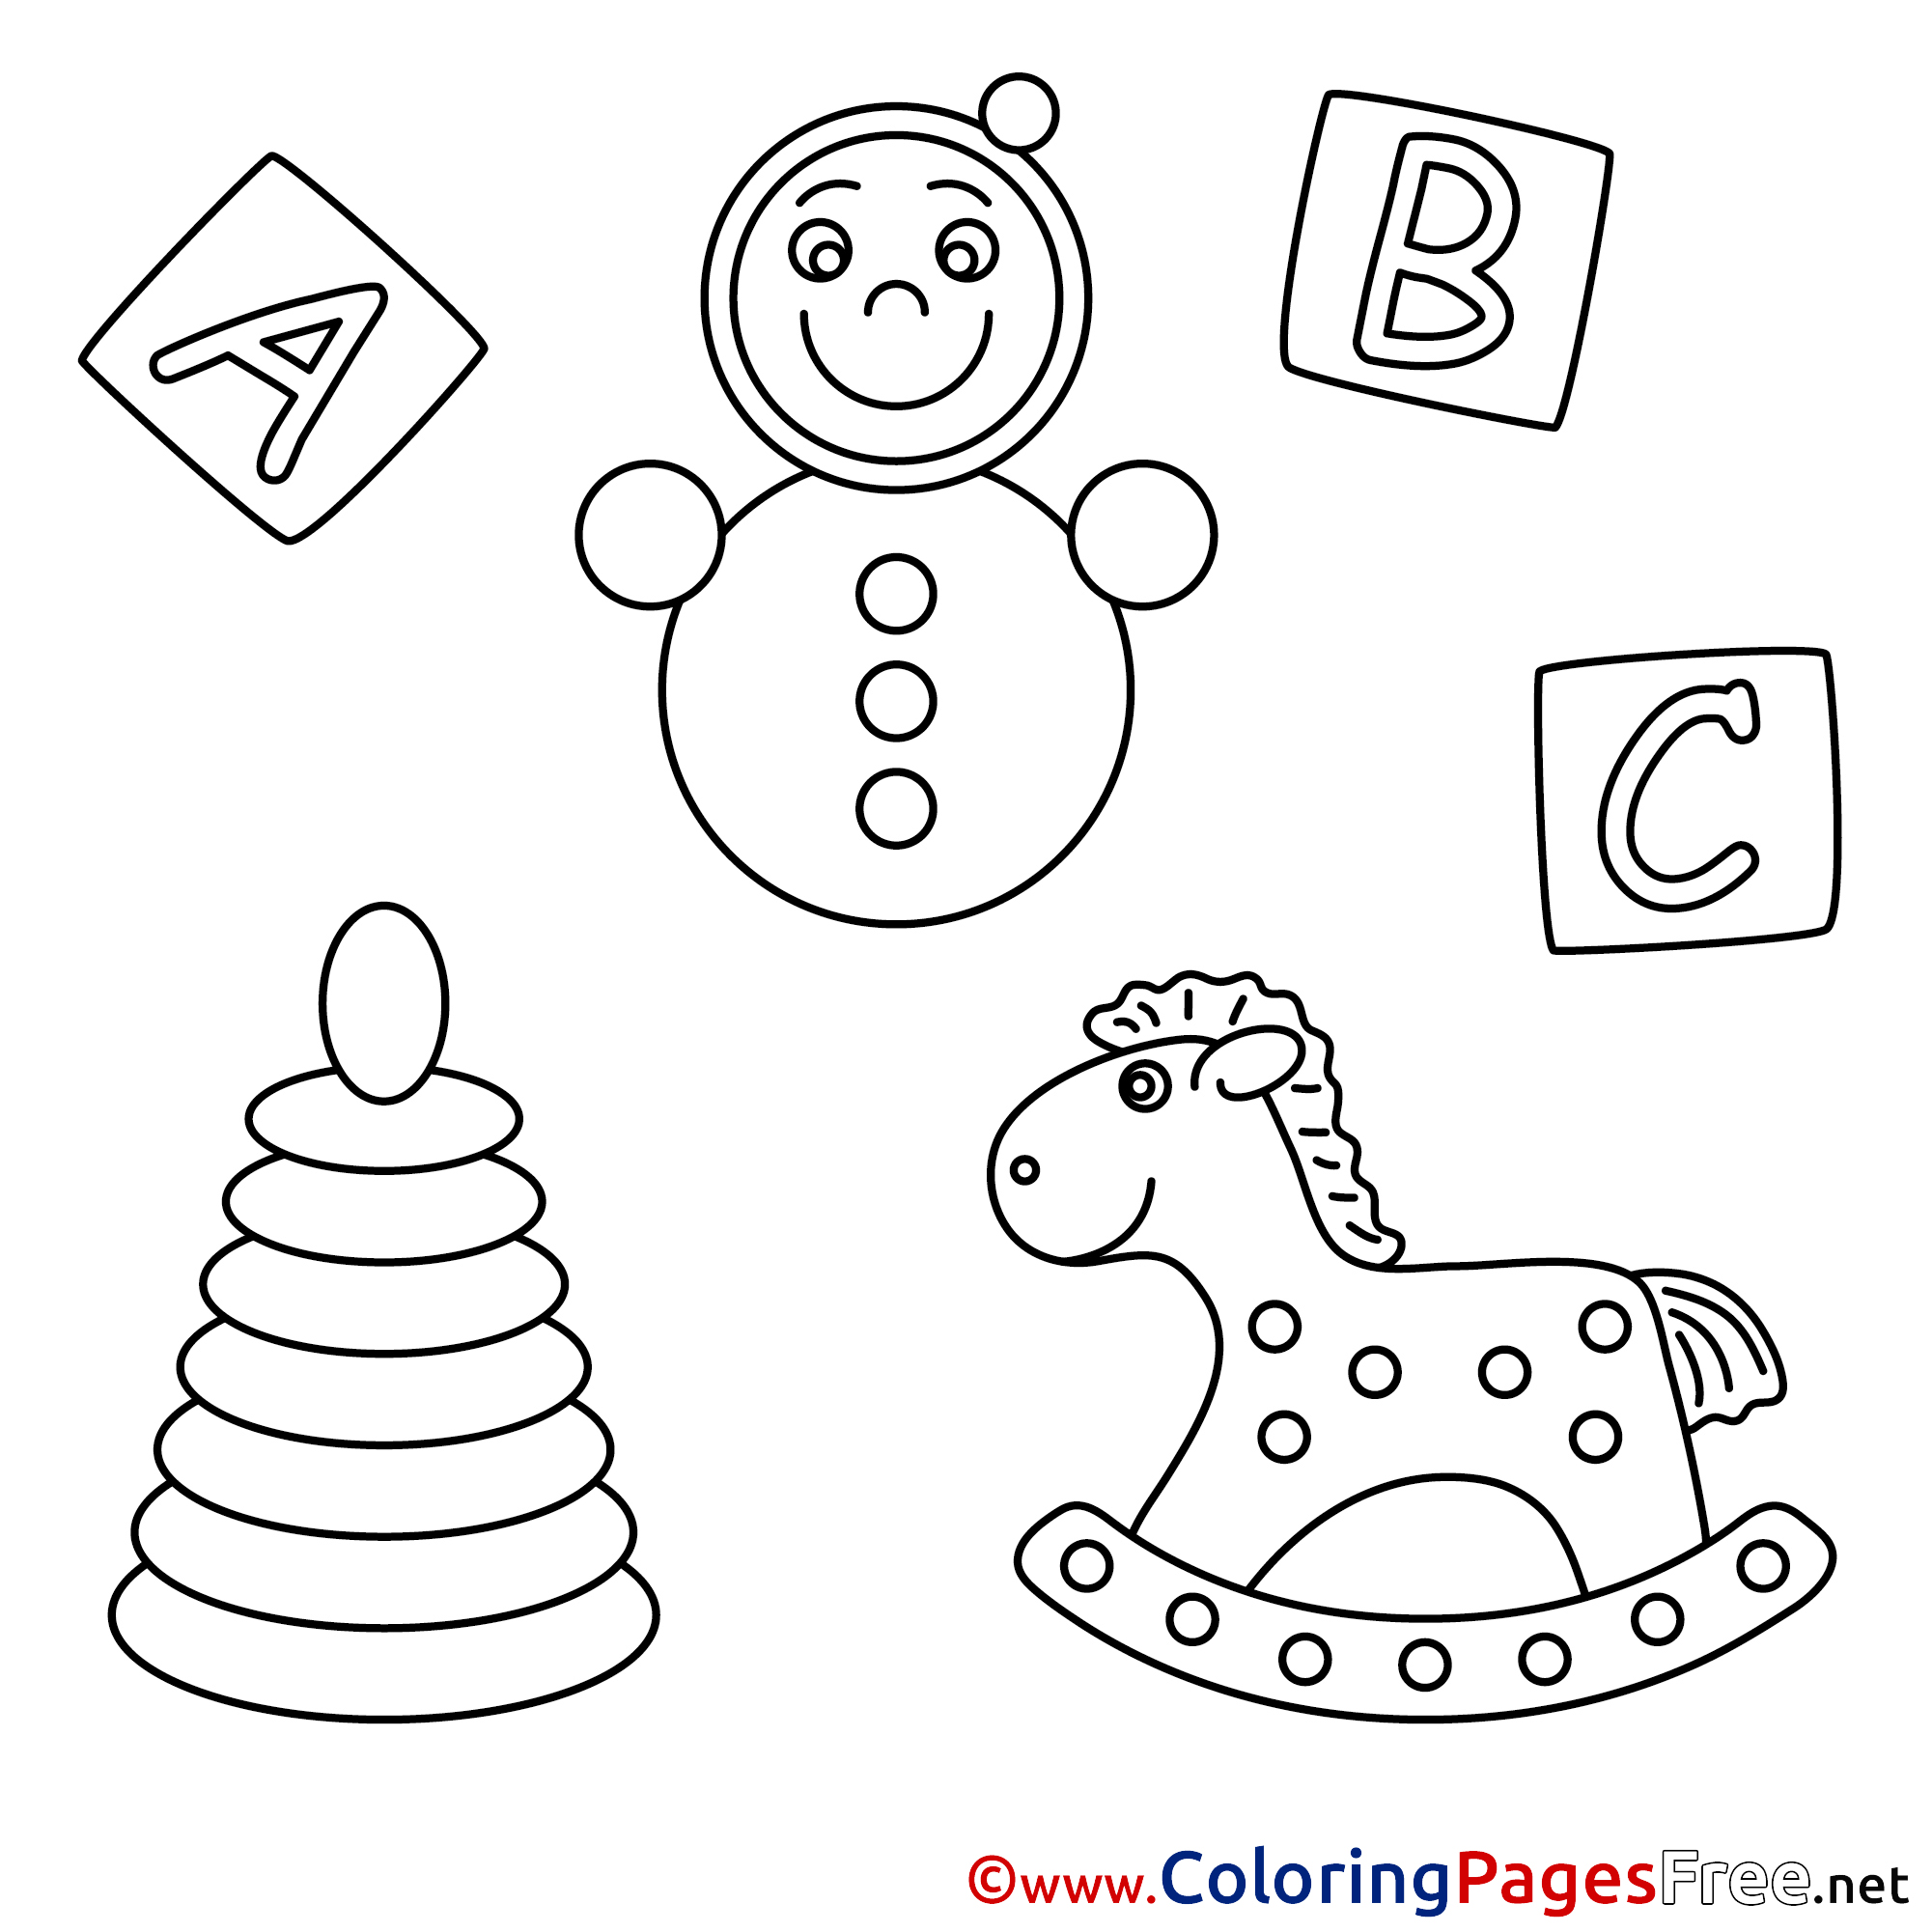 Coloring Pages For Kids Download